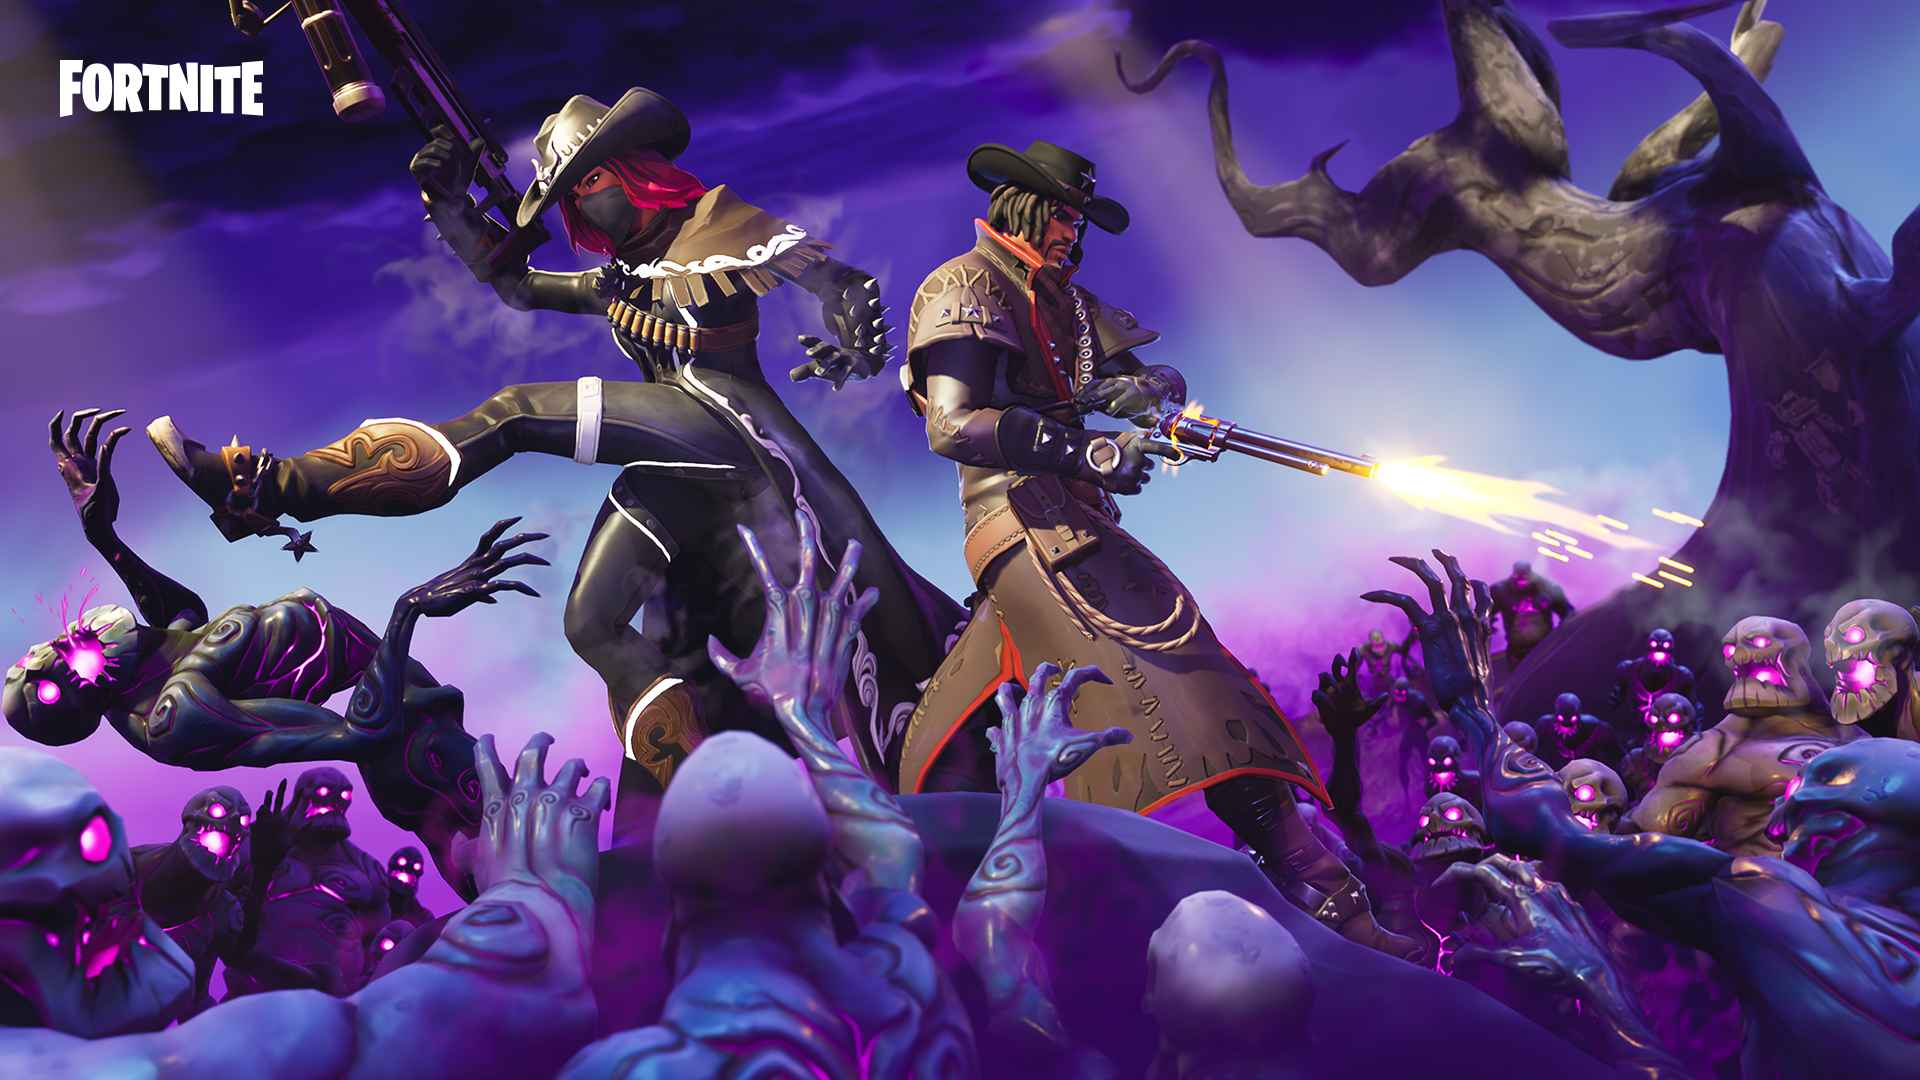 Pubg Pc Update 8 To Introduce Weapon Skin System New: Fortnite Patch 6.22 Released Alongside New LTM